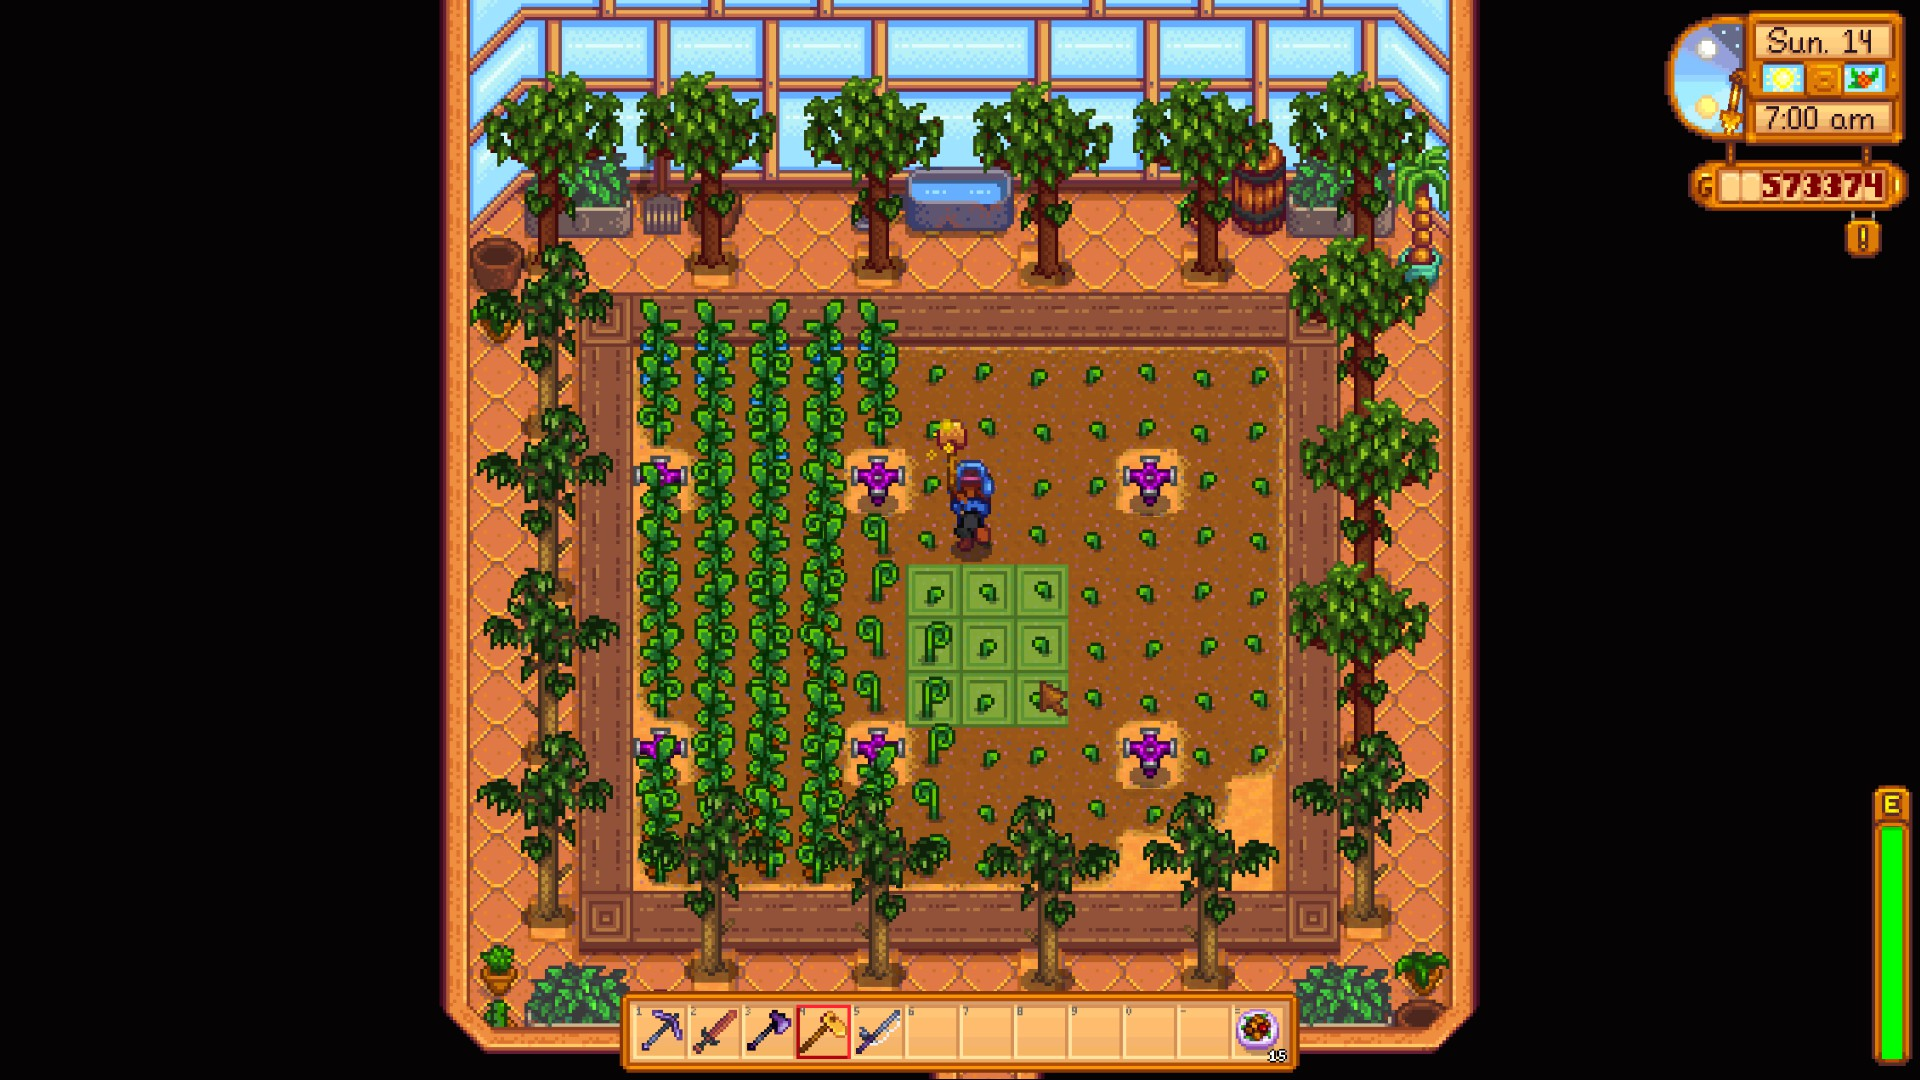 How to make money fast in Stardew Valley – our guide to getting rich